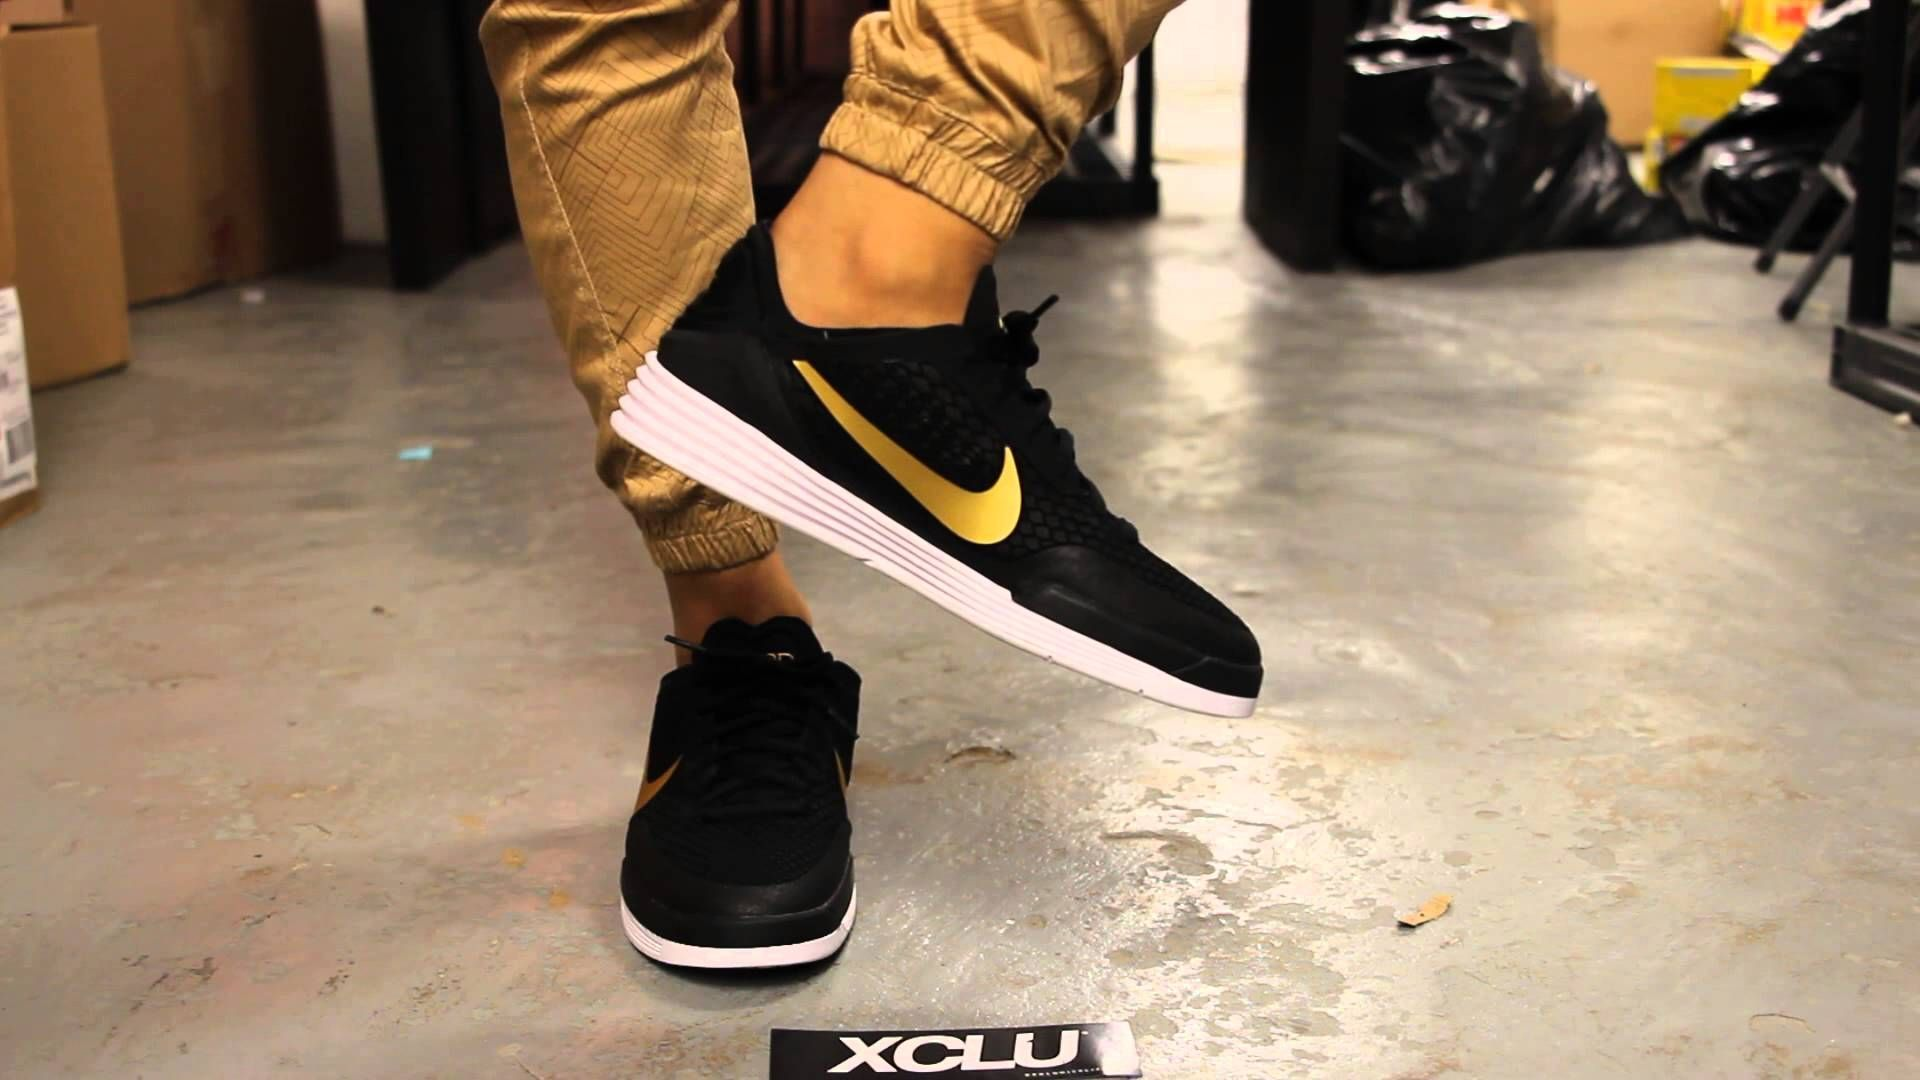 4a1421816fc Nike Paul Rodriguez 8 QS - On Feet Video   Exclucity - YouTube ...